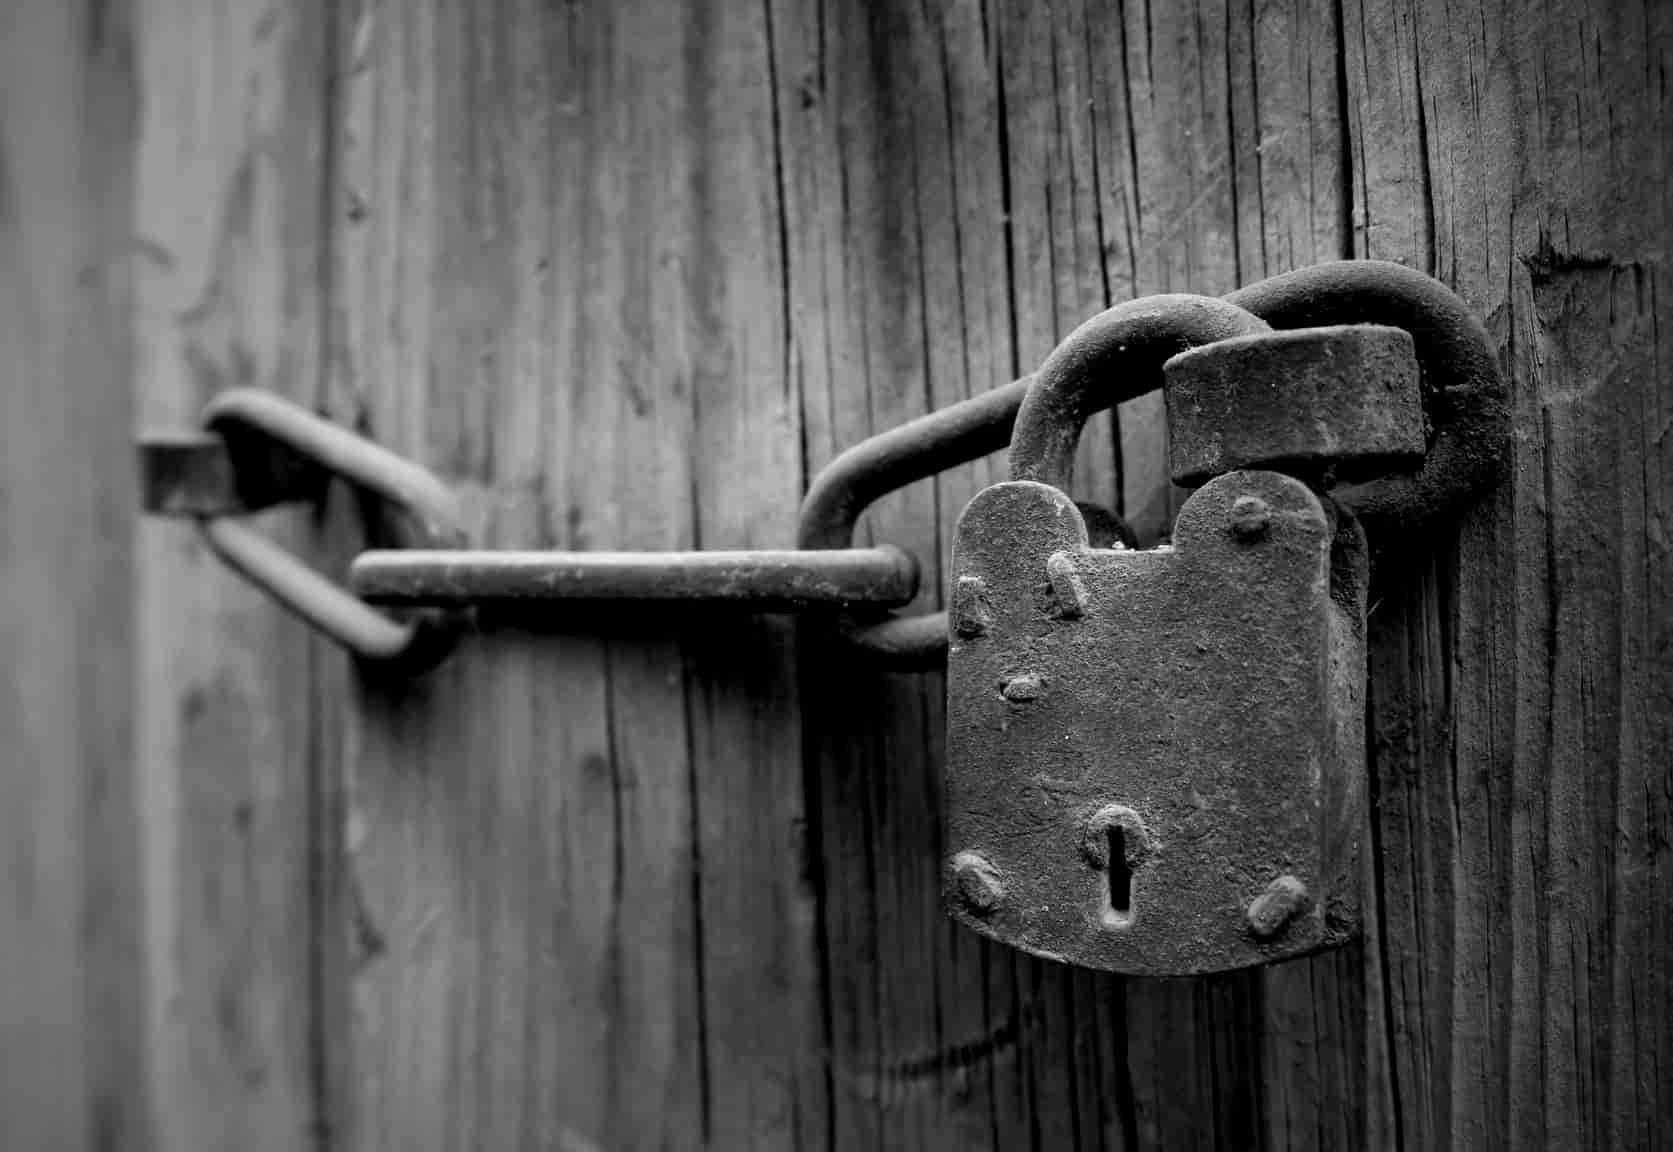 Reliable and Professional Locksmith Services at Competitive Prices - Key4Freedom